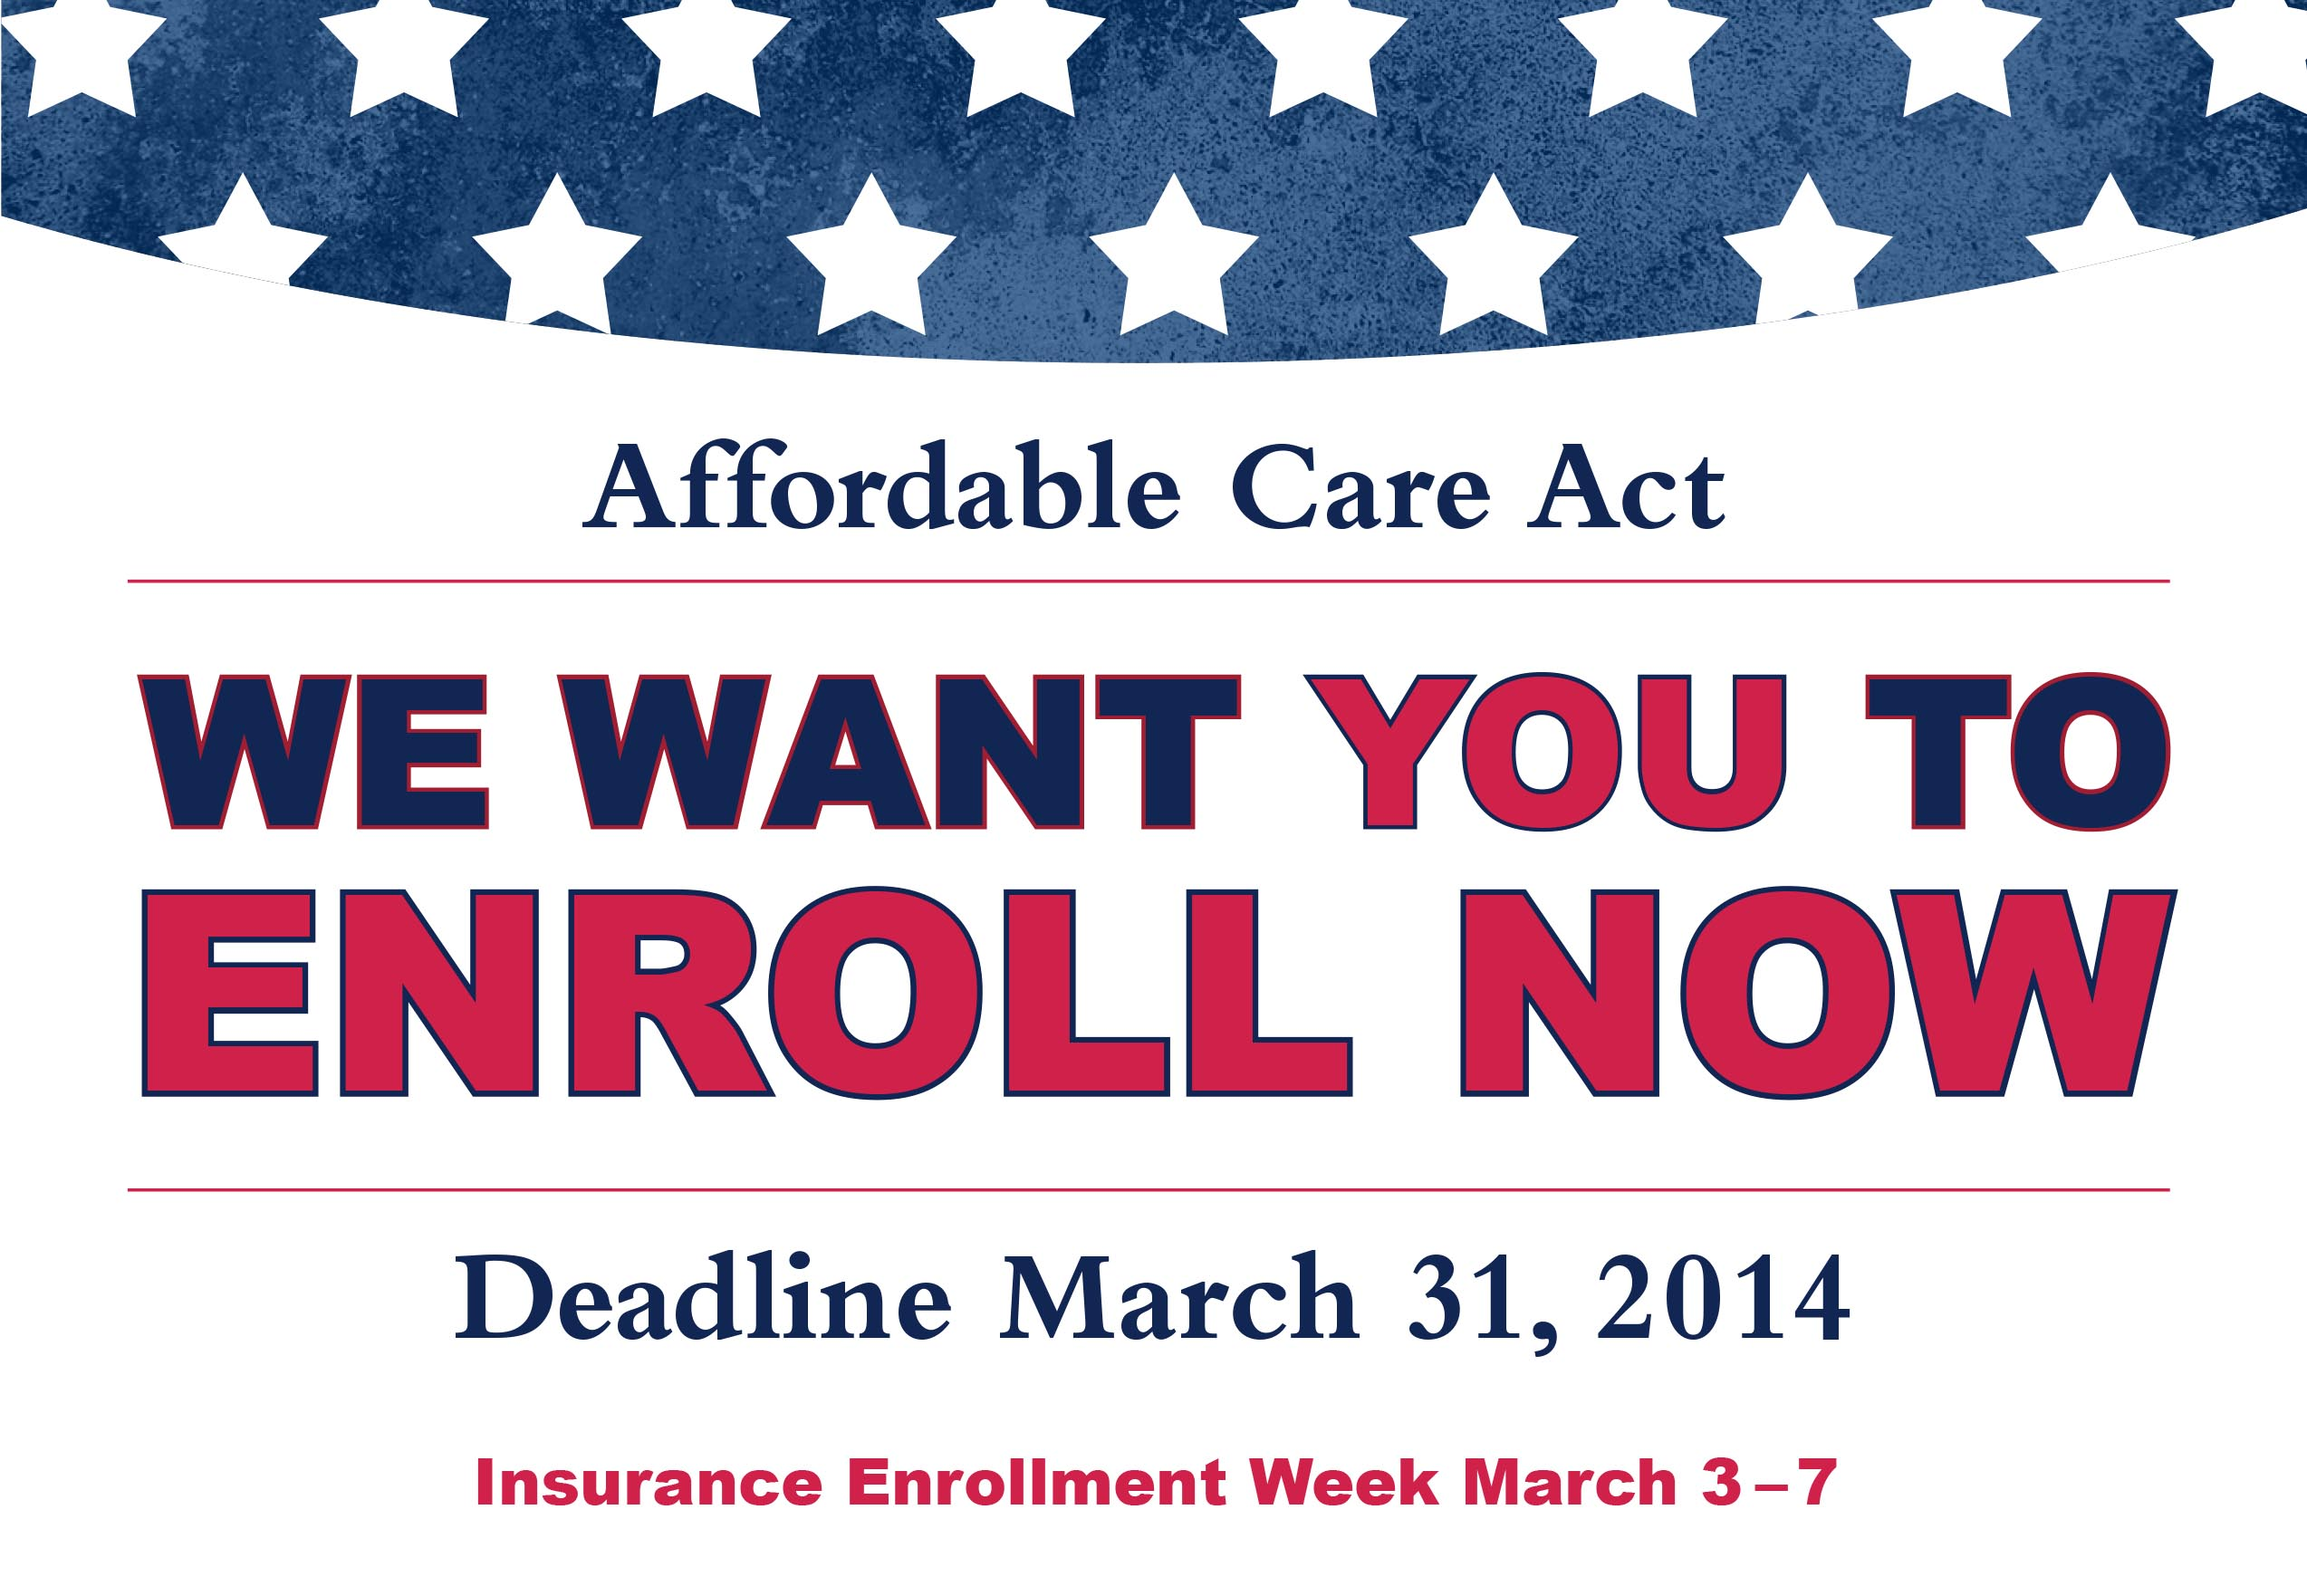 Erlanger provides assistance for March 31 Affordable Care Act enrollment deadline